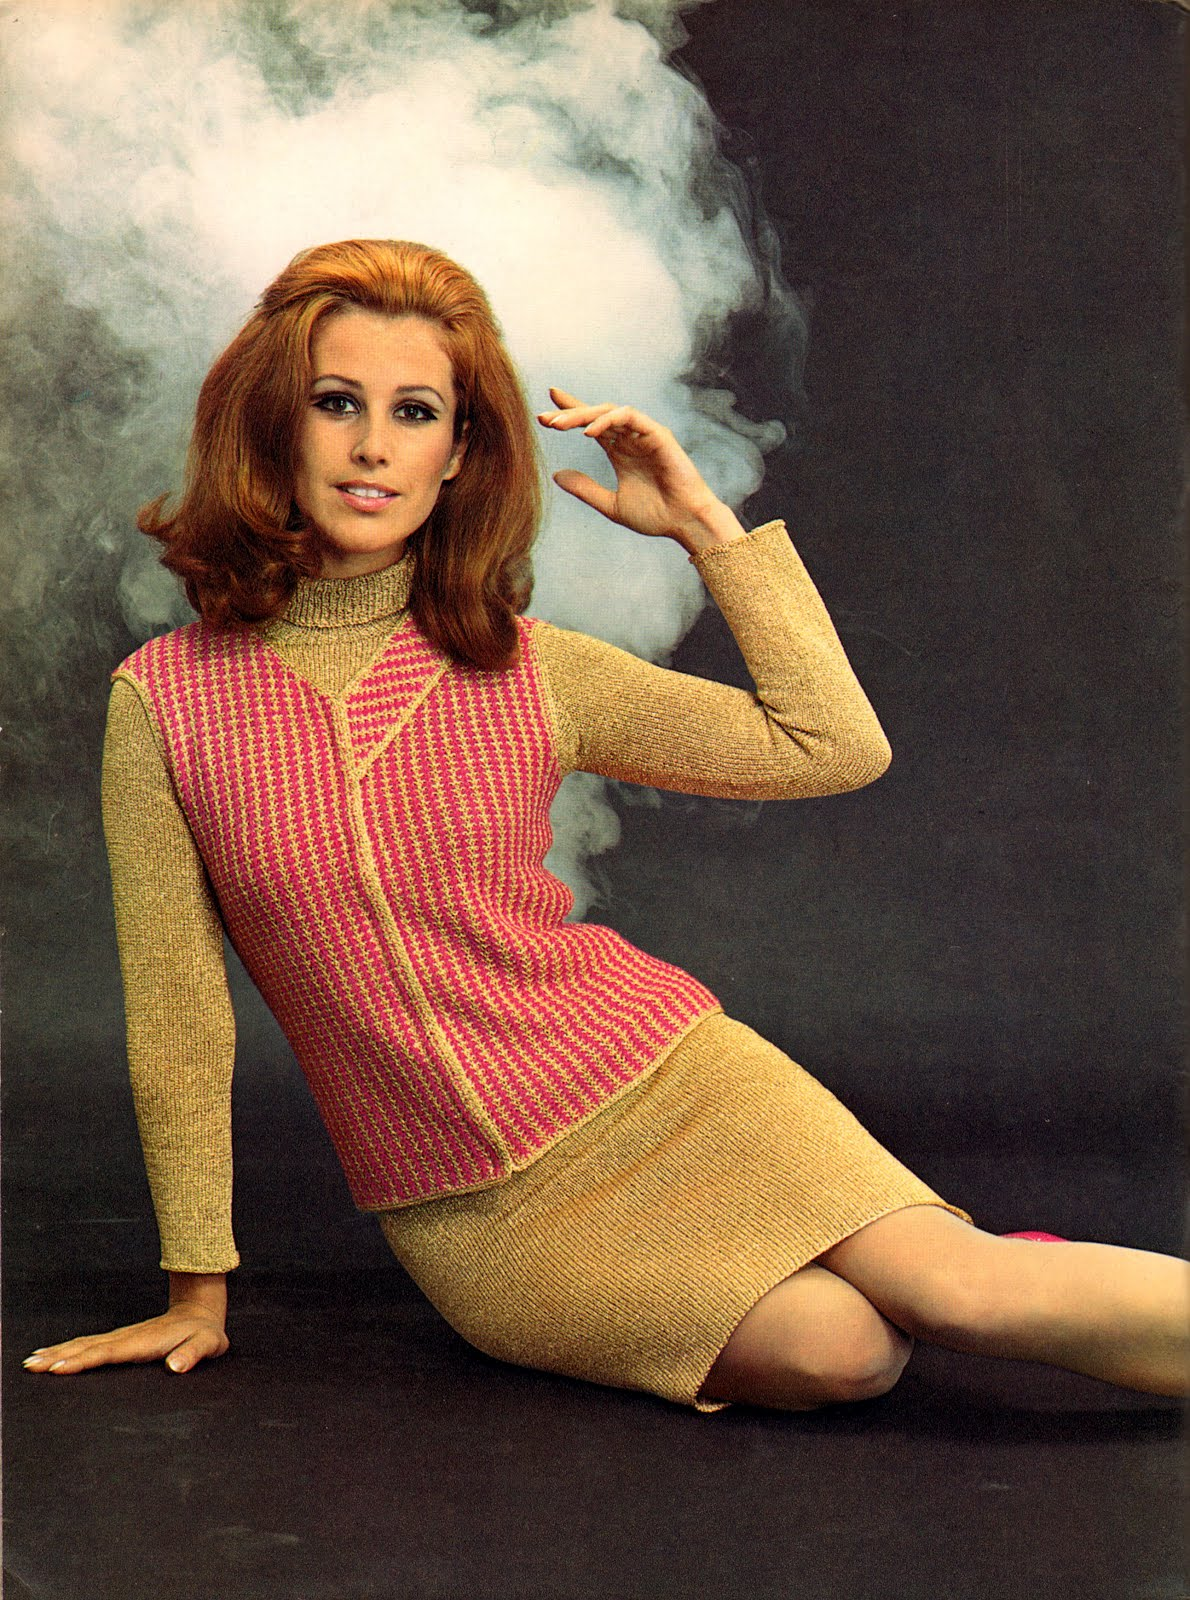 Beautiful Women's Knit Dresses That Featured on Spinnerin ...